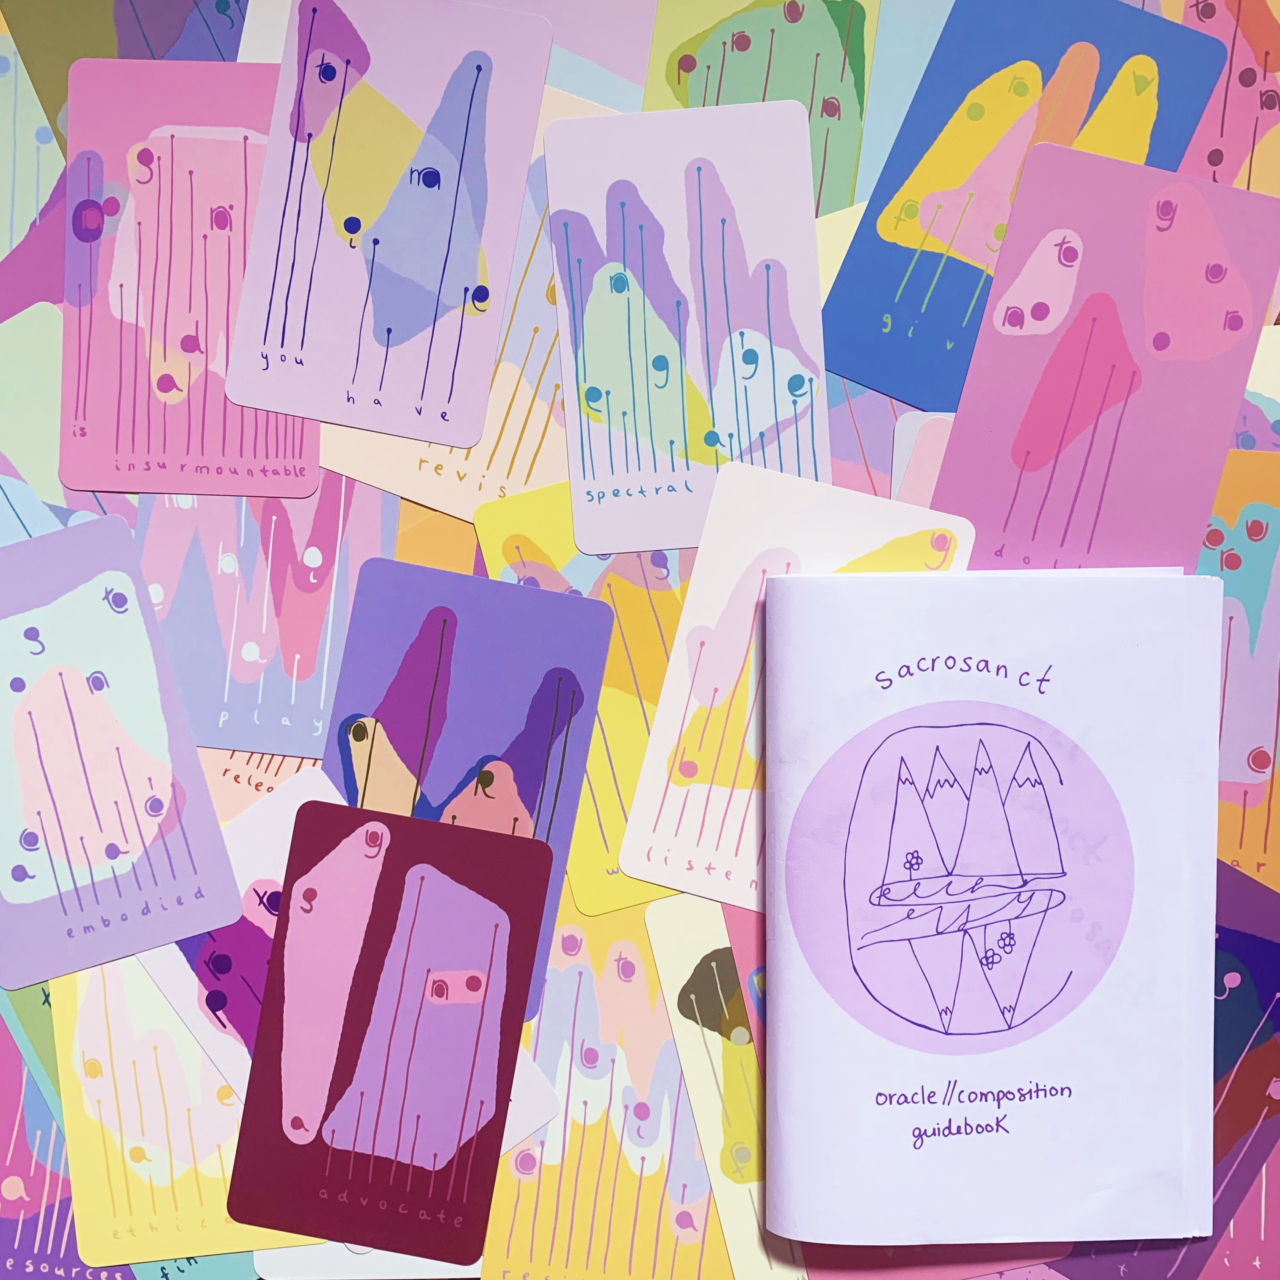 A multi-pastel-colored collection of Sacrosanct Oracle//Composition Cards are collaged. Among them is the Sacrosanct Oracle//Composition Guidebook.